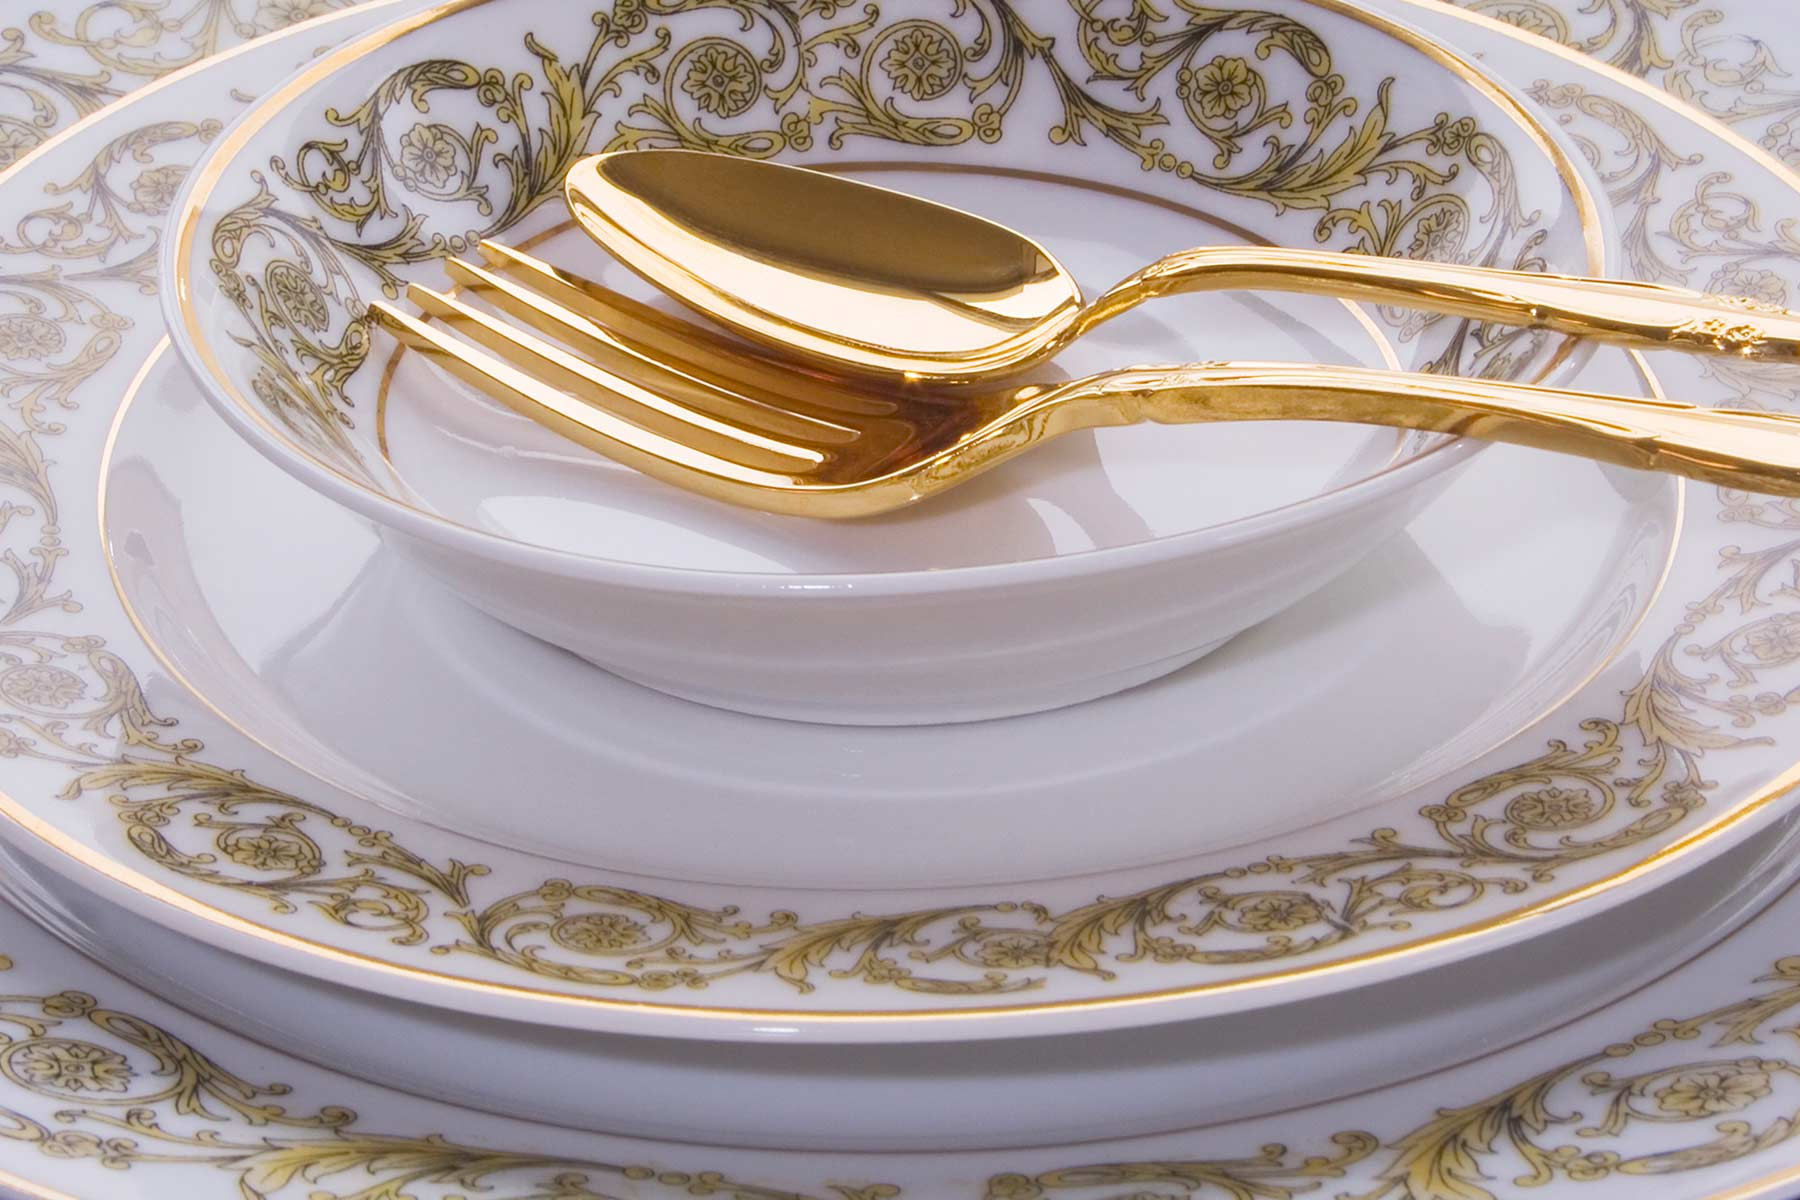 bespoke gold fork spoon bowl plate charger china precious metal design